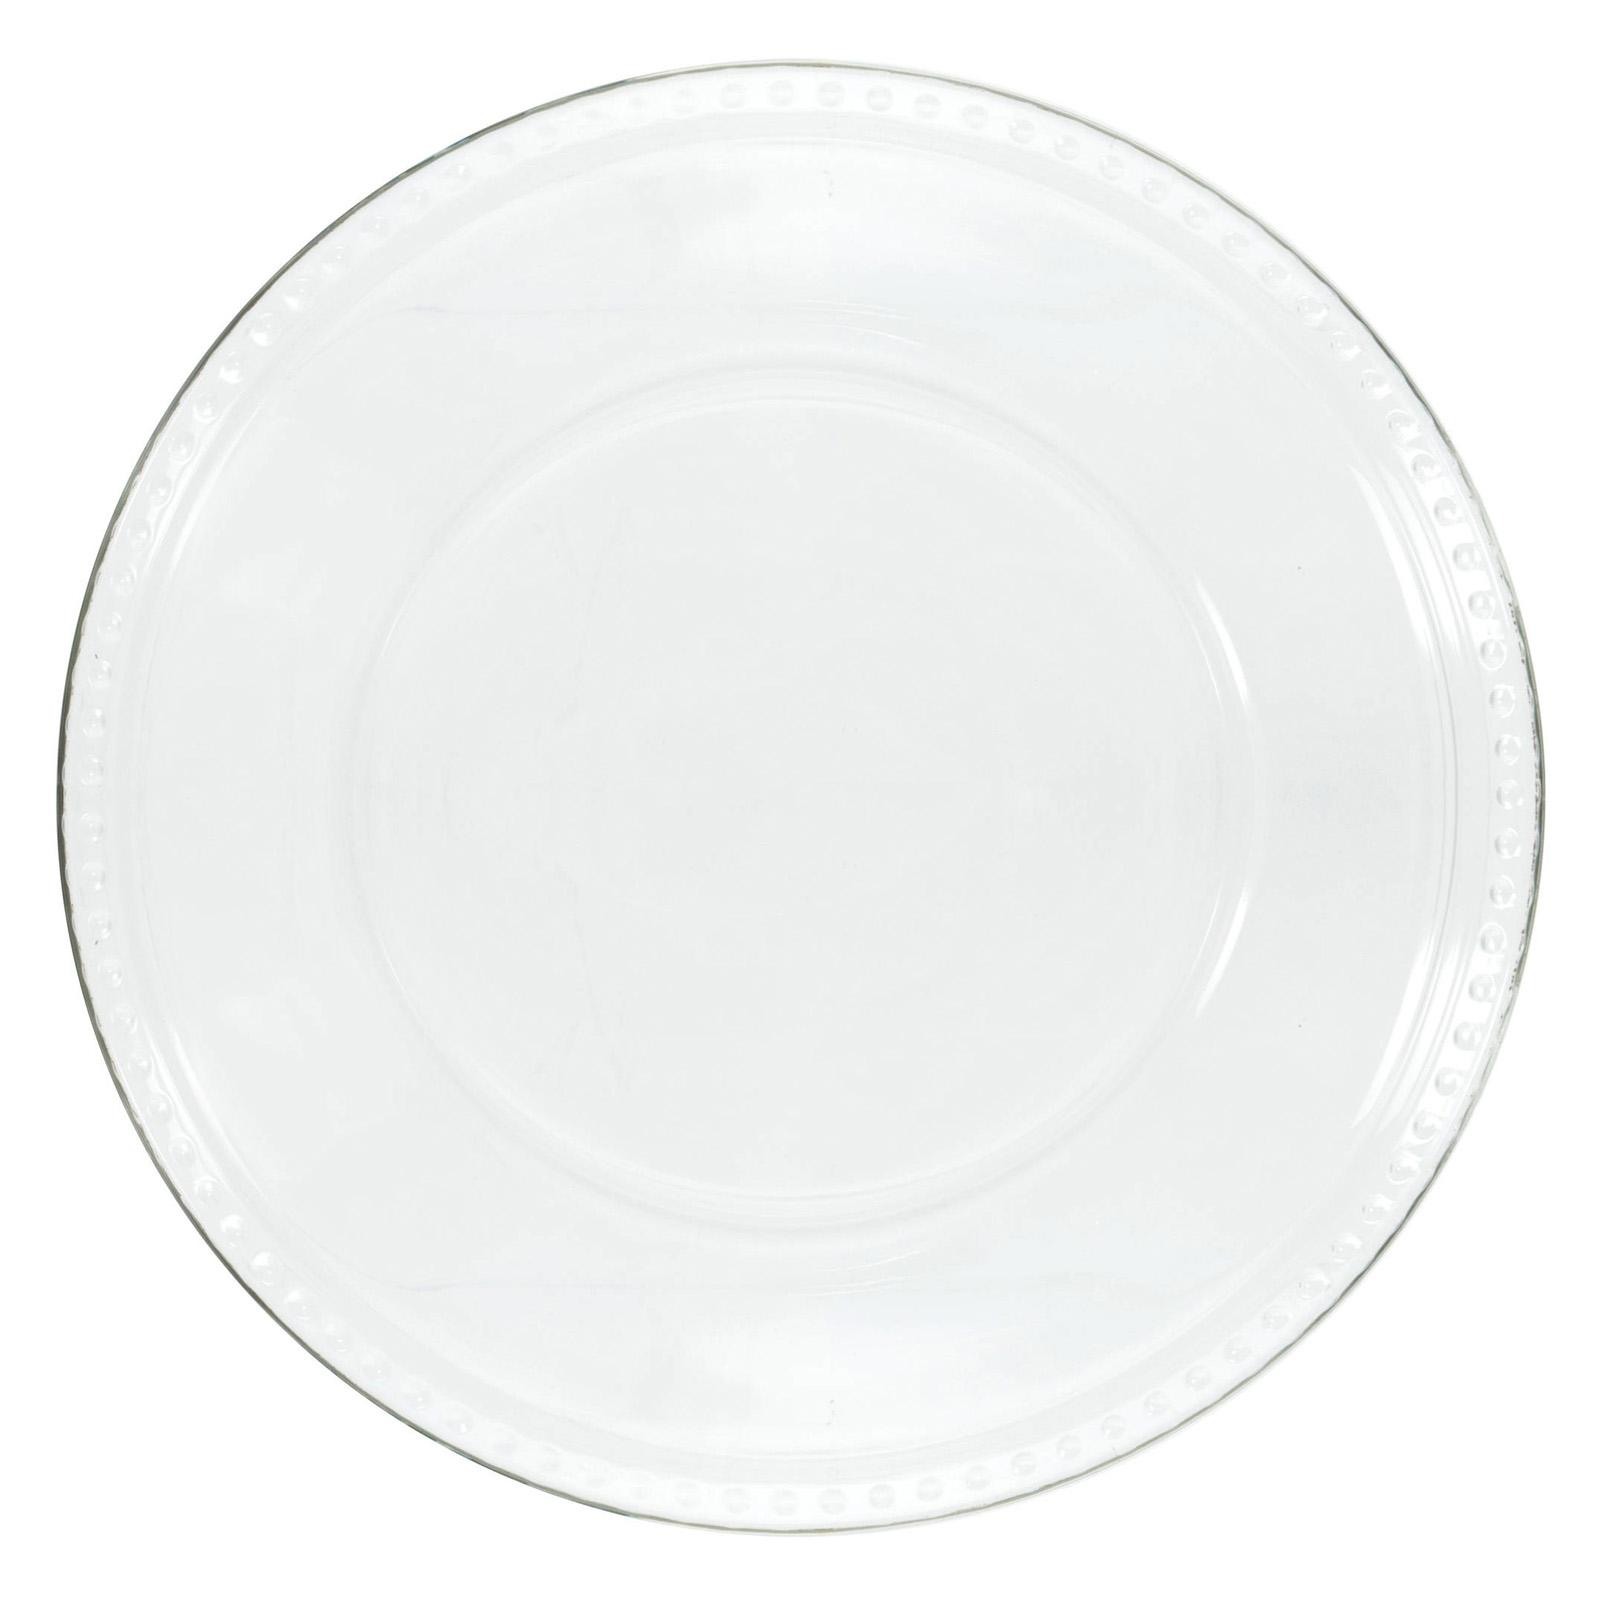 Anchor Hocking Isabella 10 in. Dinner Plate - Set of 12 -...